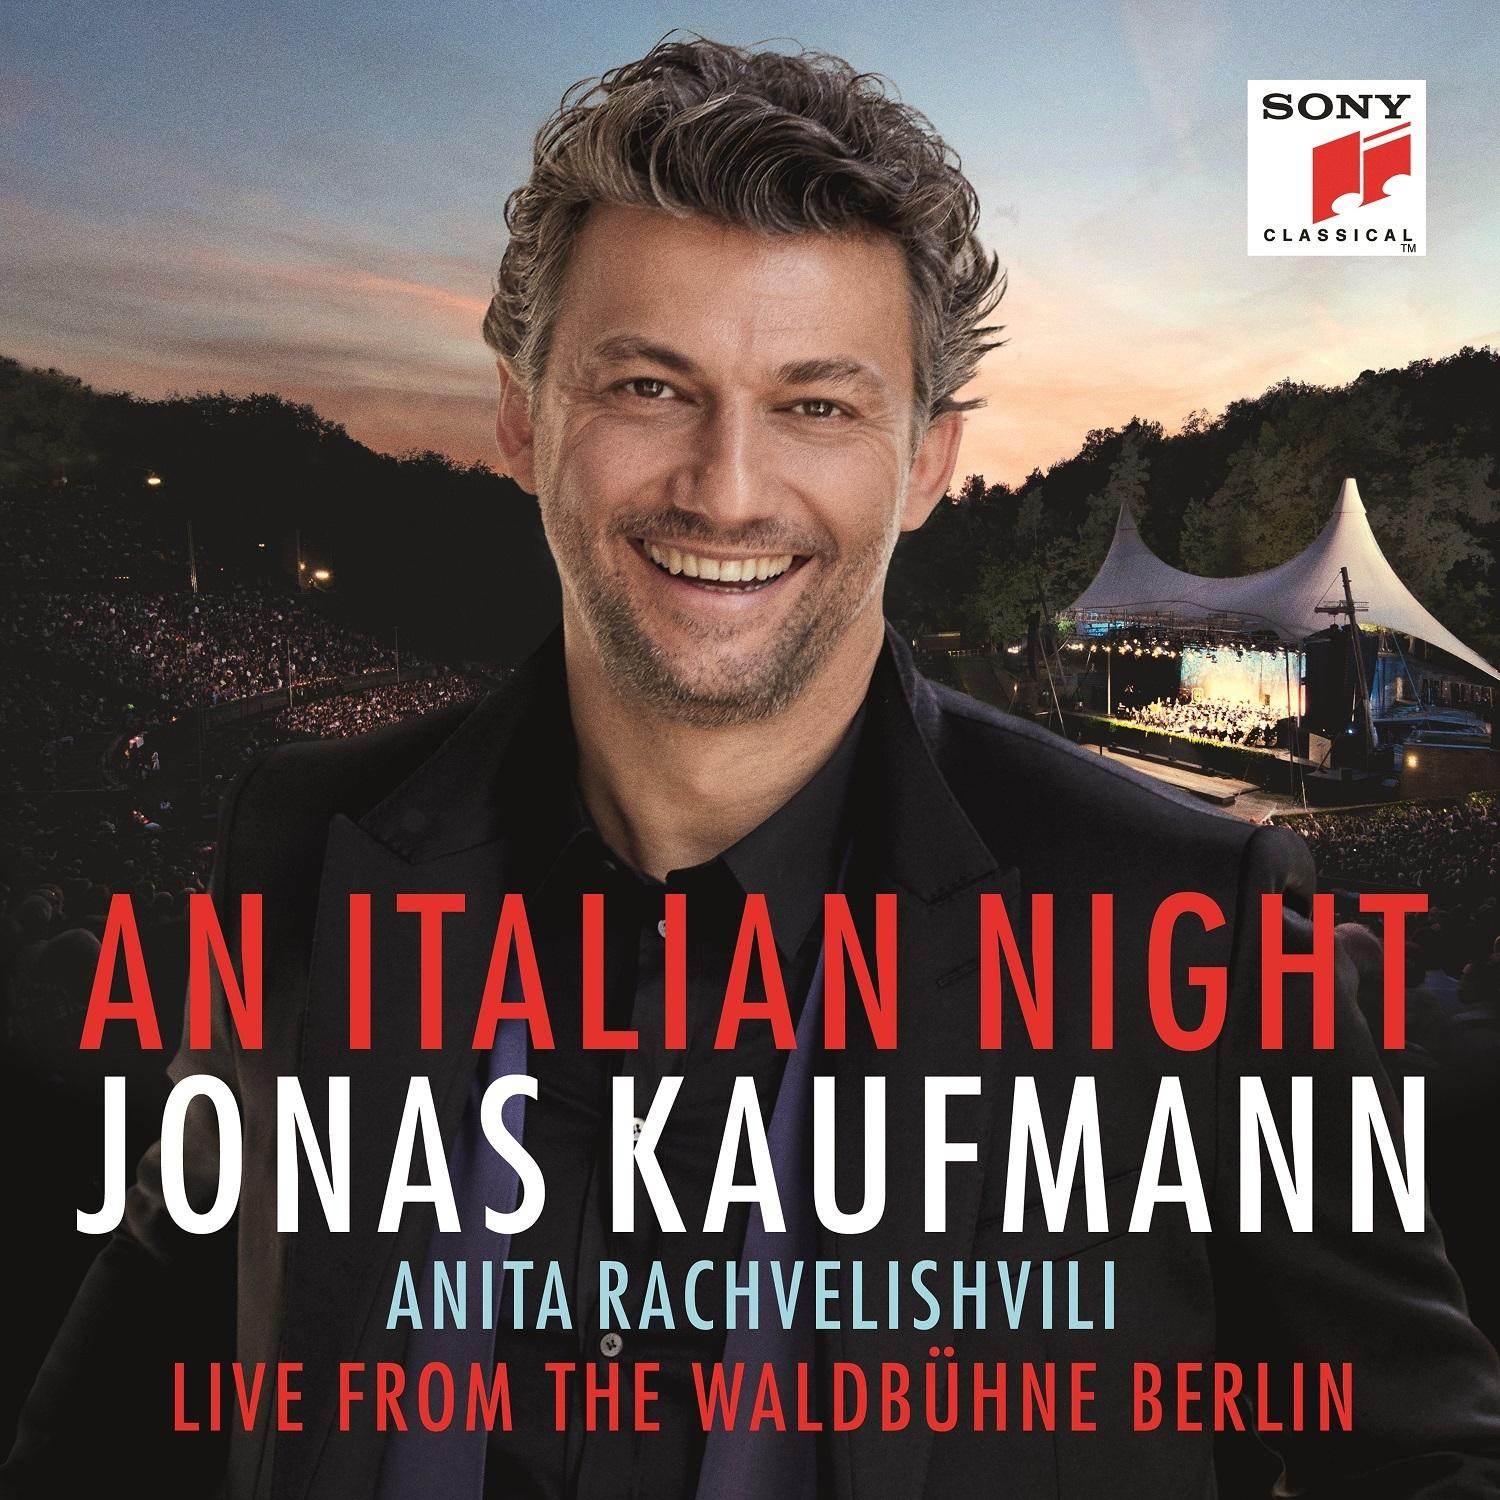 An Italian Night: Live from theWaldbuhneBerlin